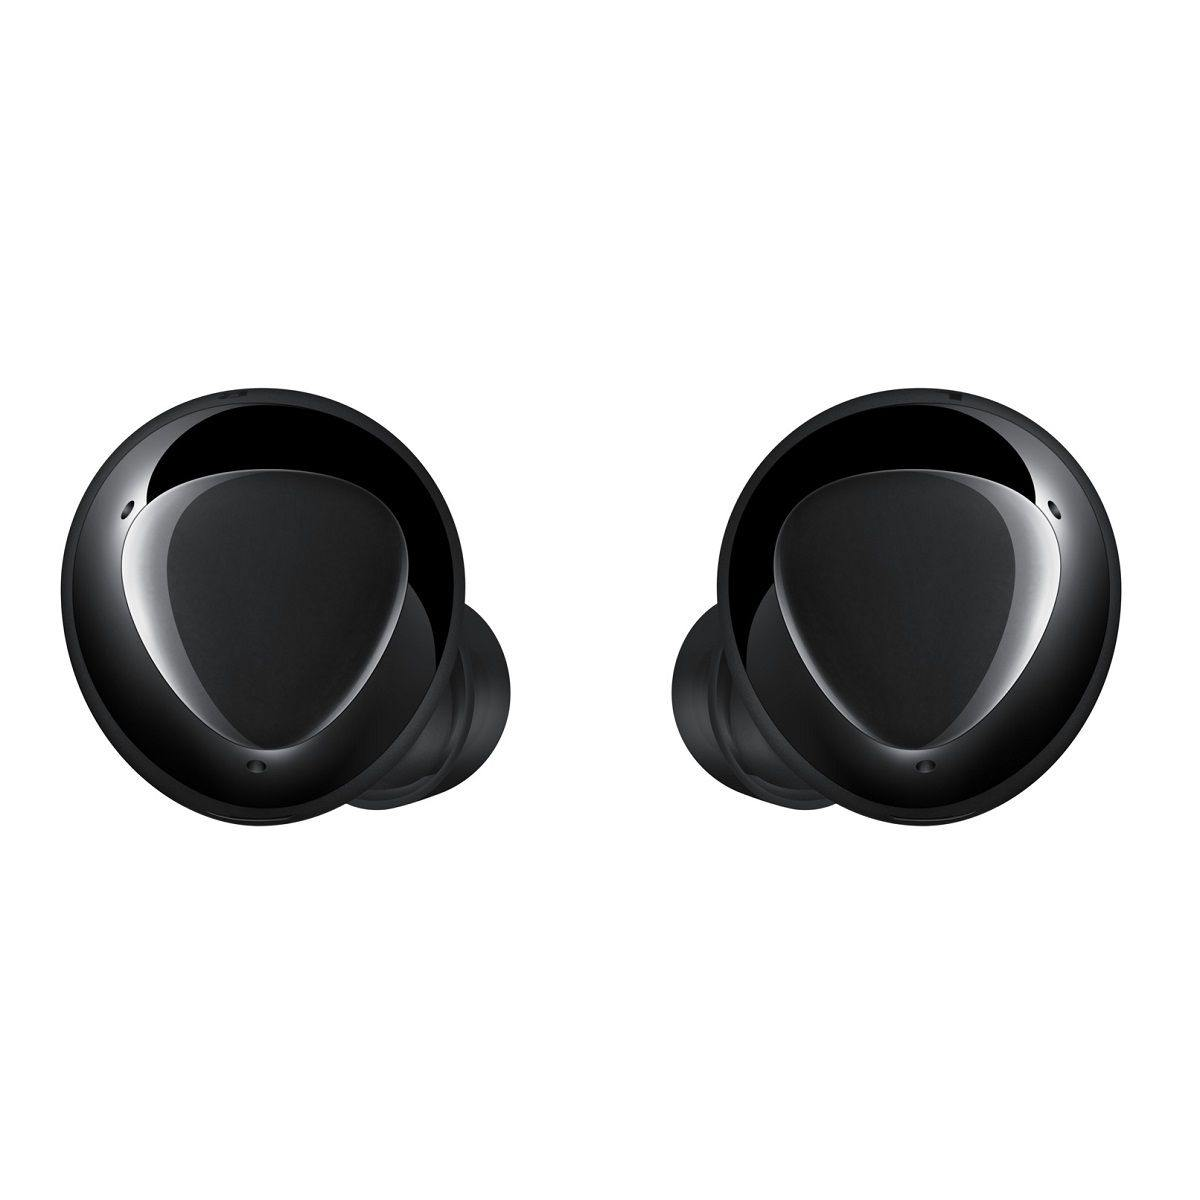 Official Samsung Galaxy Buds Plus Bluetooth Wireless Earphones with Charging Case Black